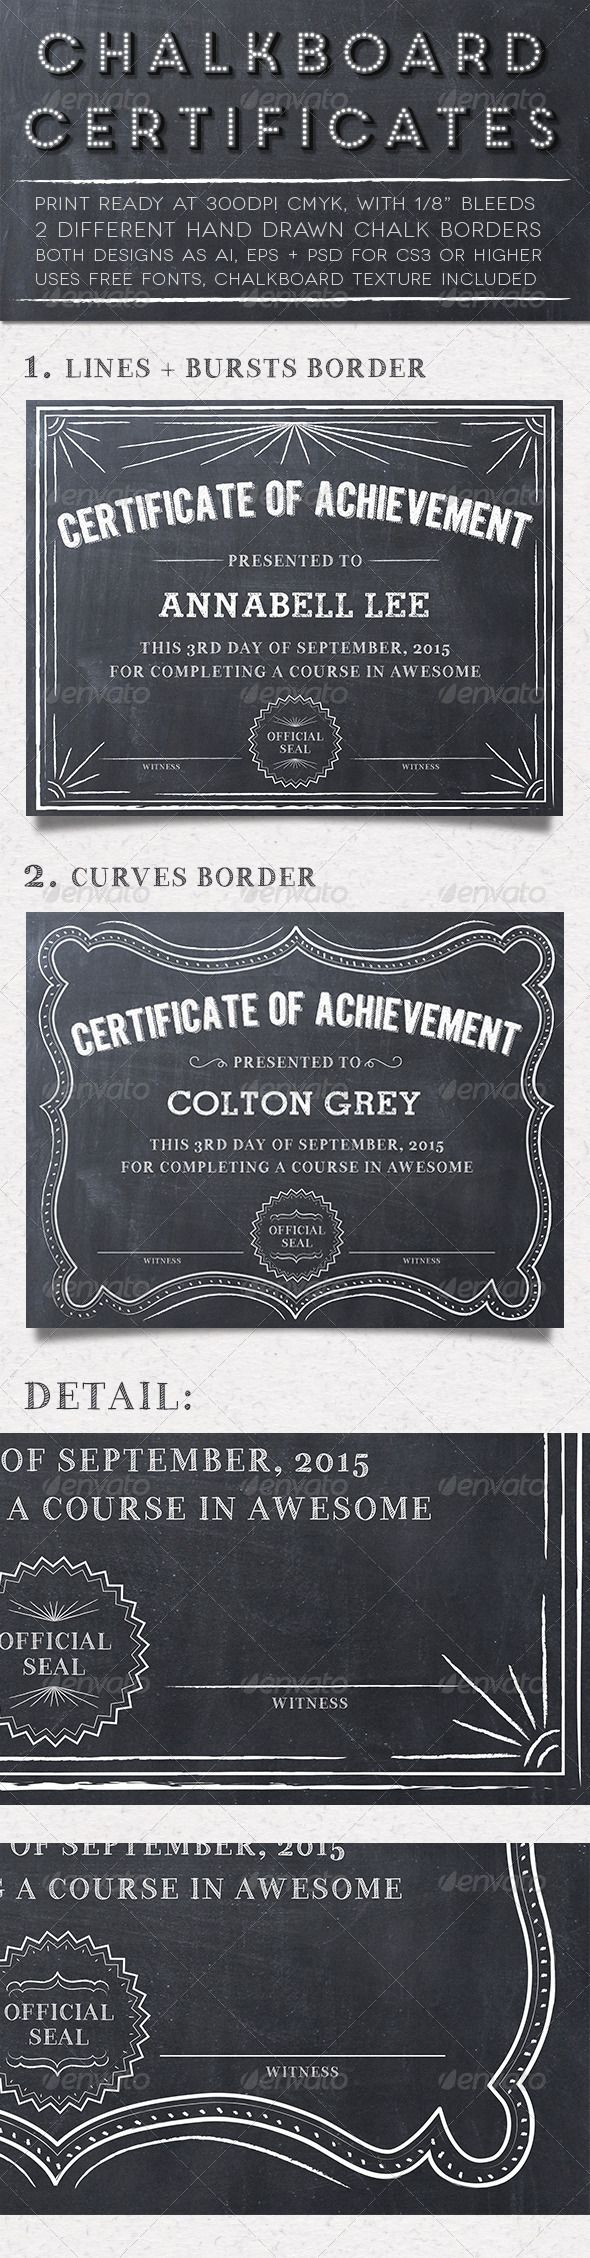 The Chalkboard Certificates  -  PSD Template • Only available here! → https://graphicriver.net/item/chalkboard-certificates/5565189?ref=pxcr